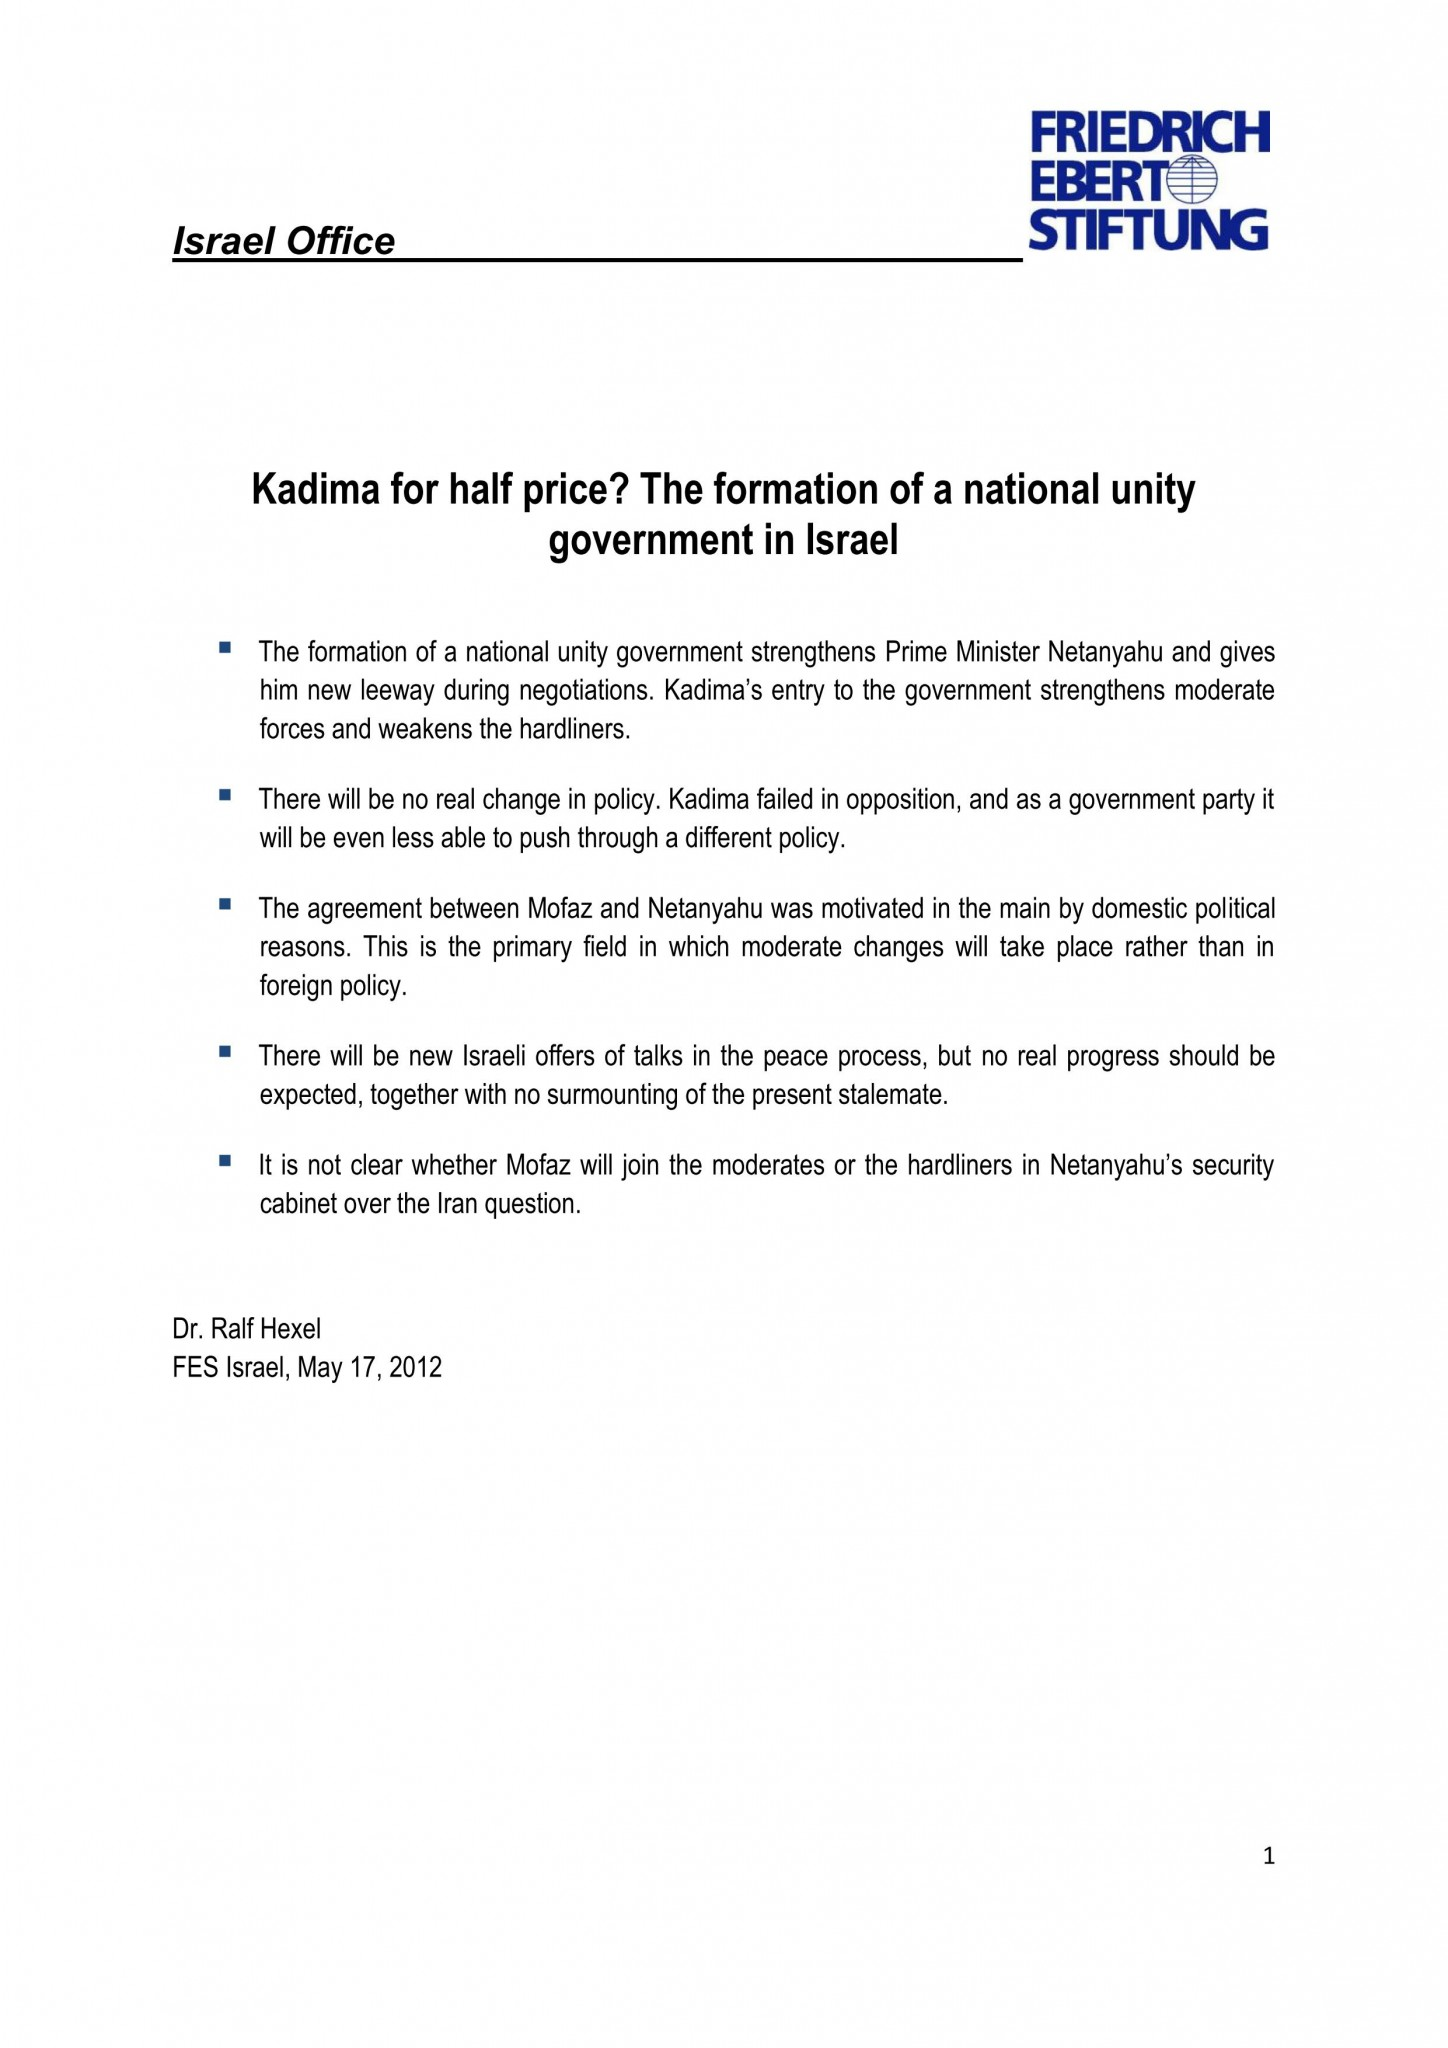 The formation of a National Unity Government in Israel